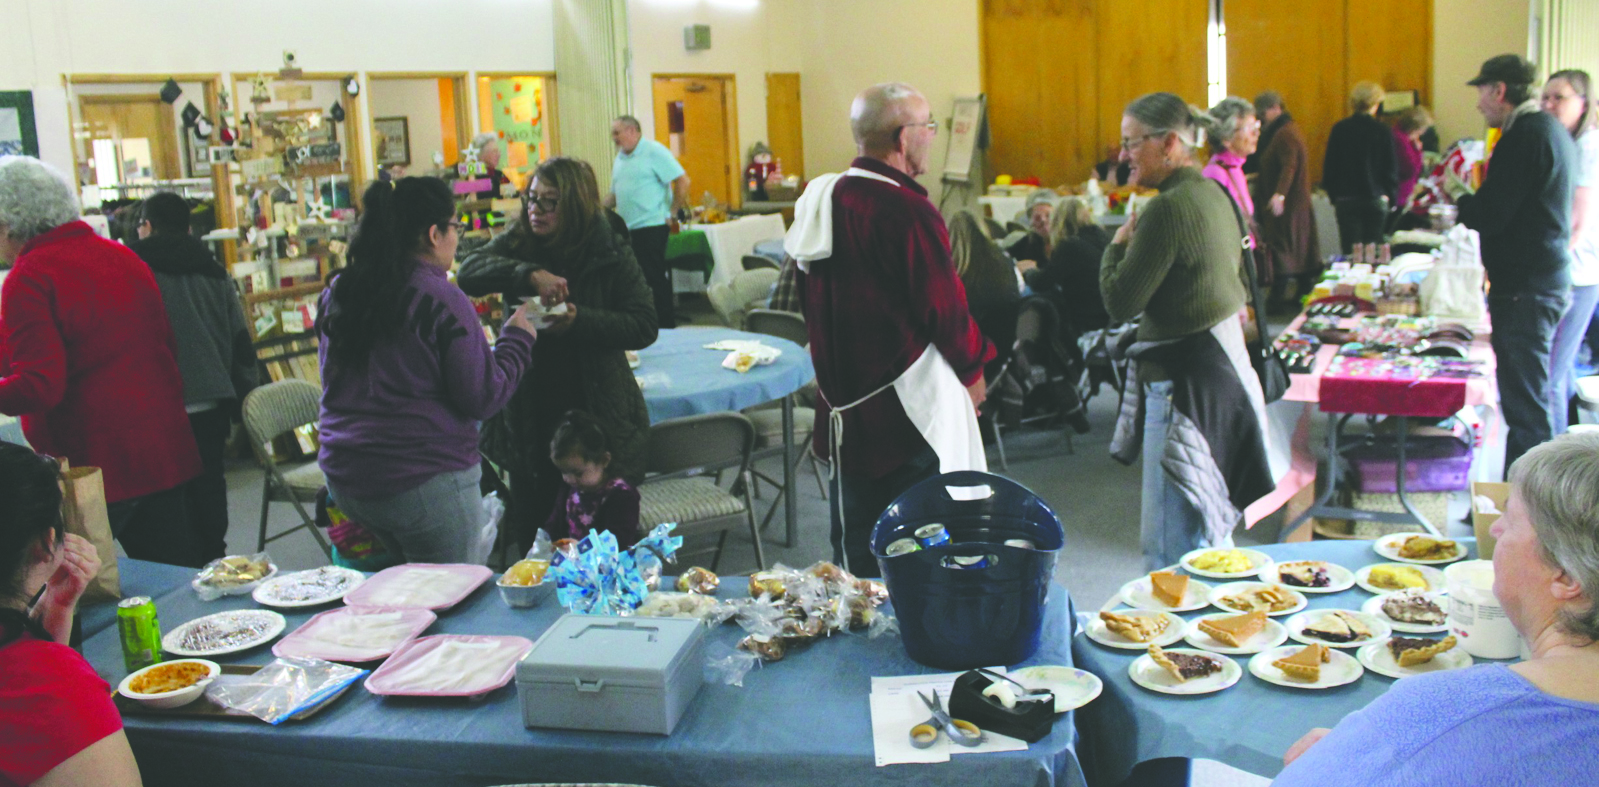 The annual Pateros Holiday Bazaar was held from 10 a.m. to 2 p.m., Saturday, Nov. 4., at the United Methodist Church. Lots of craft items and good food made the event a must-stop for many area residents.